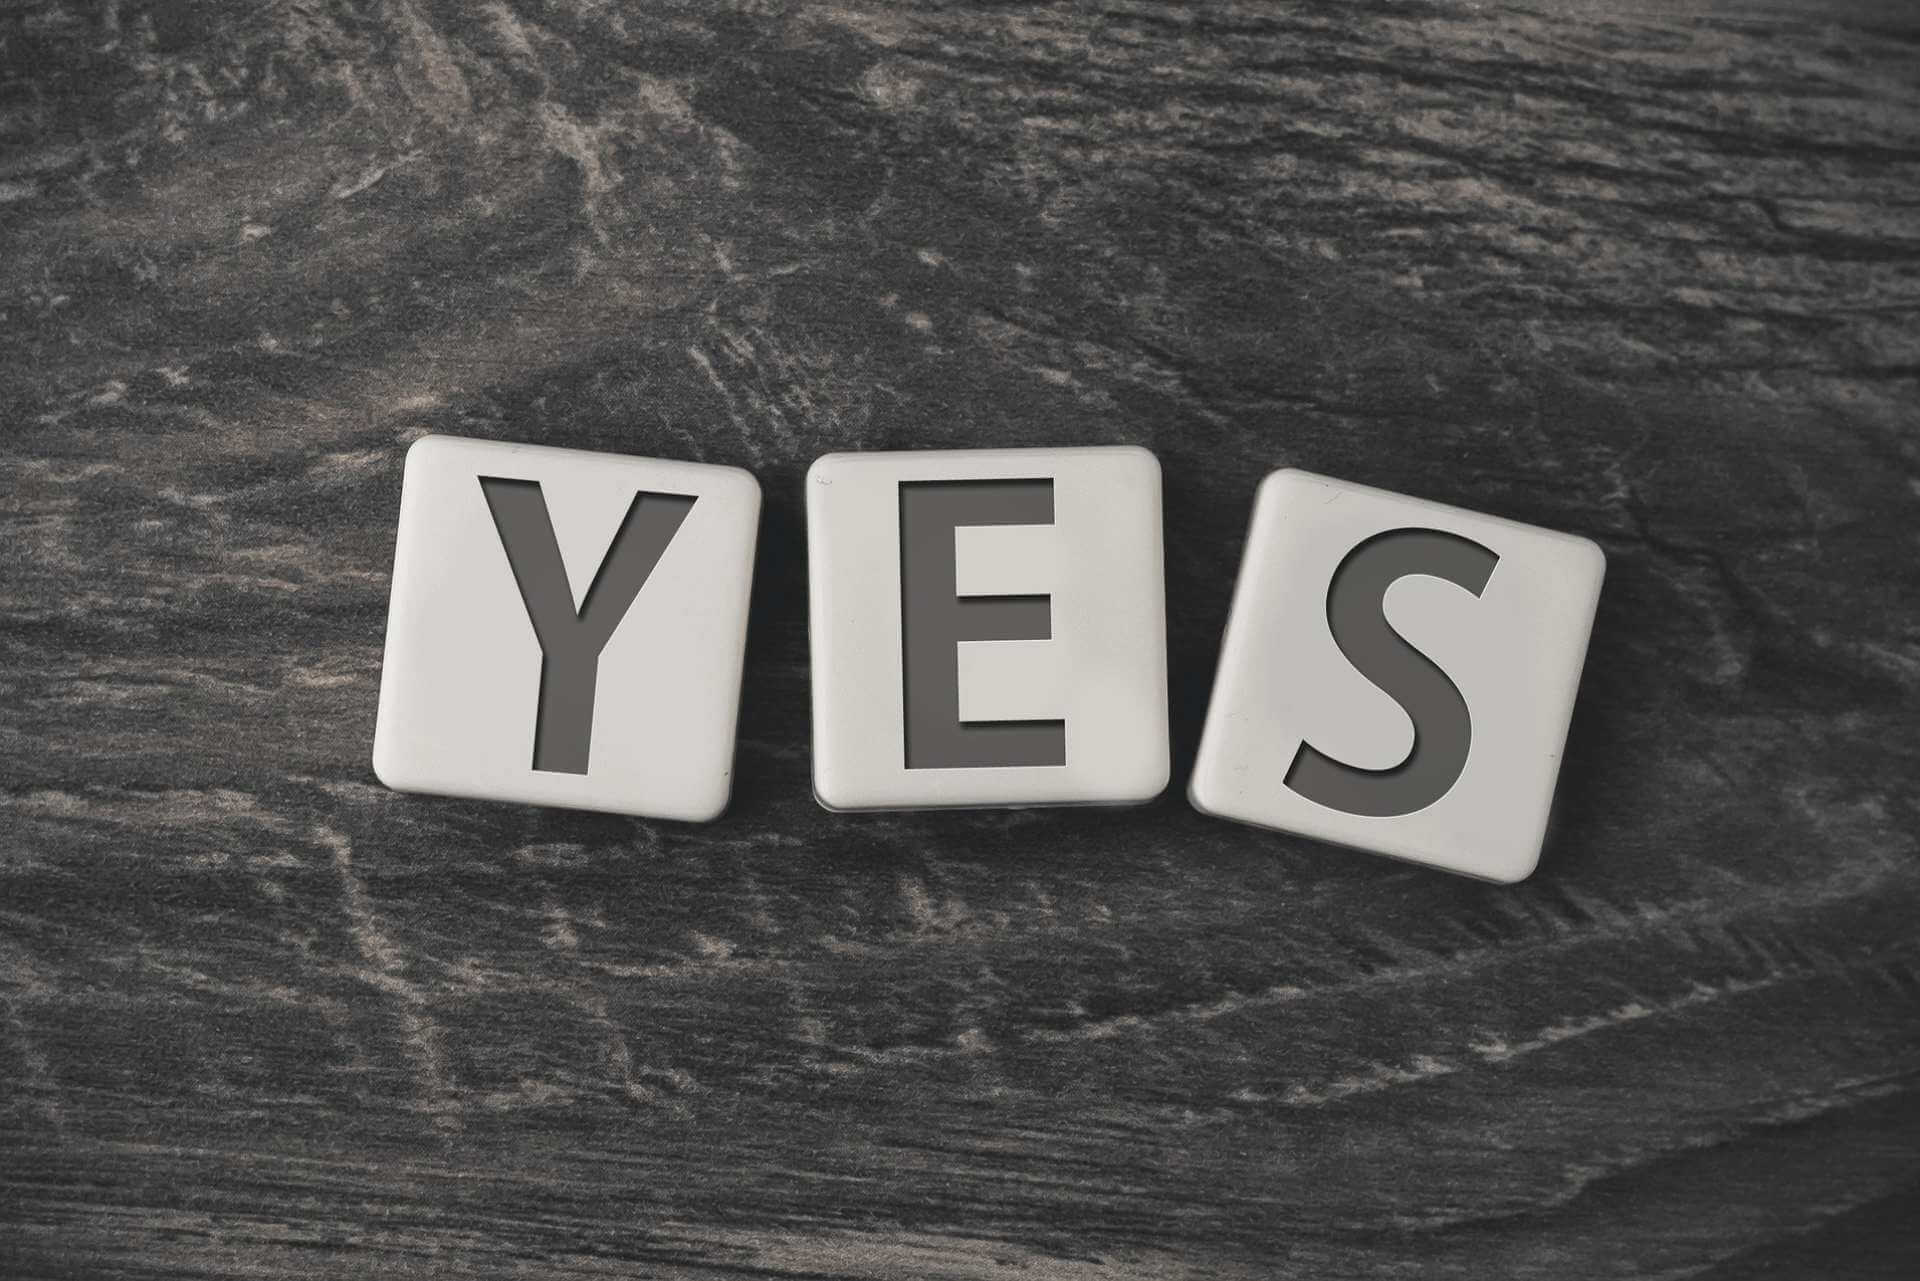 170+ Funny Ways to Say YES 2020